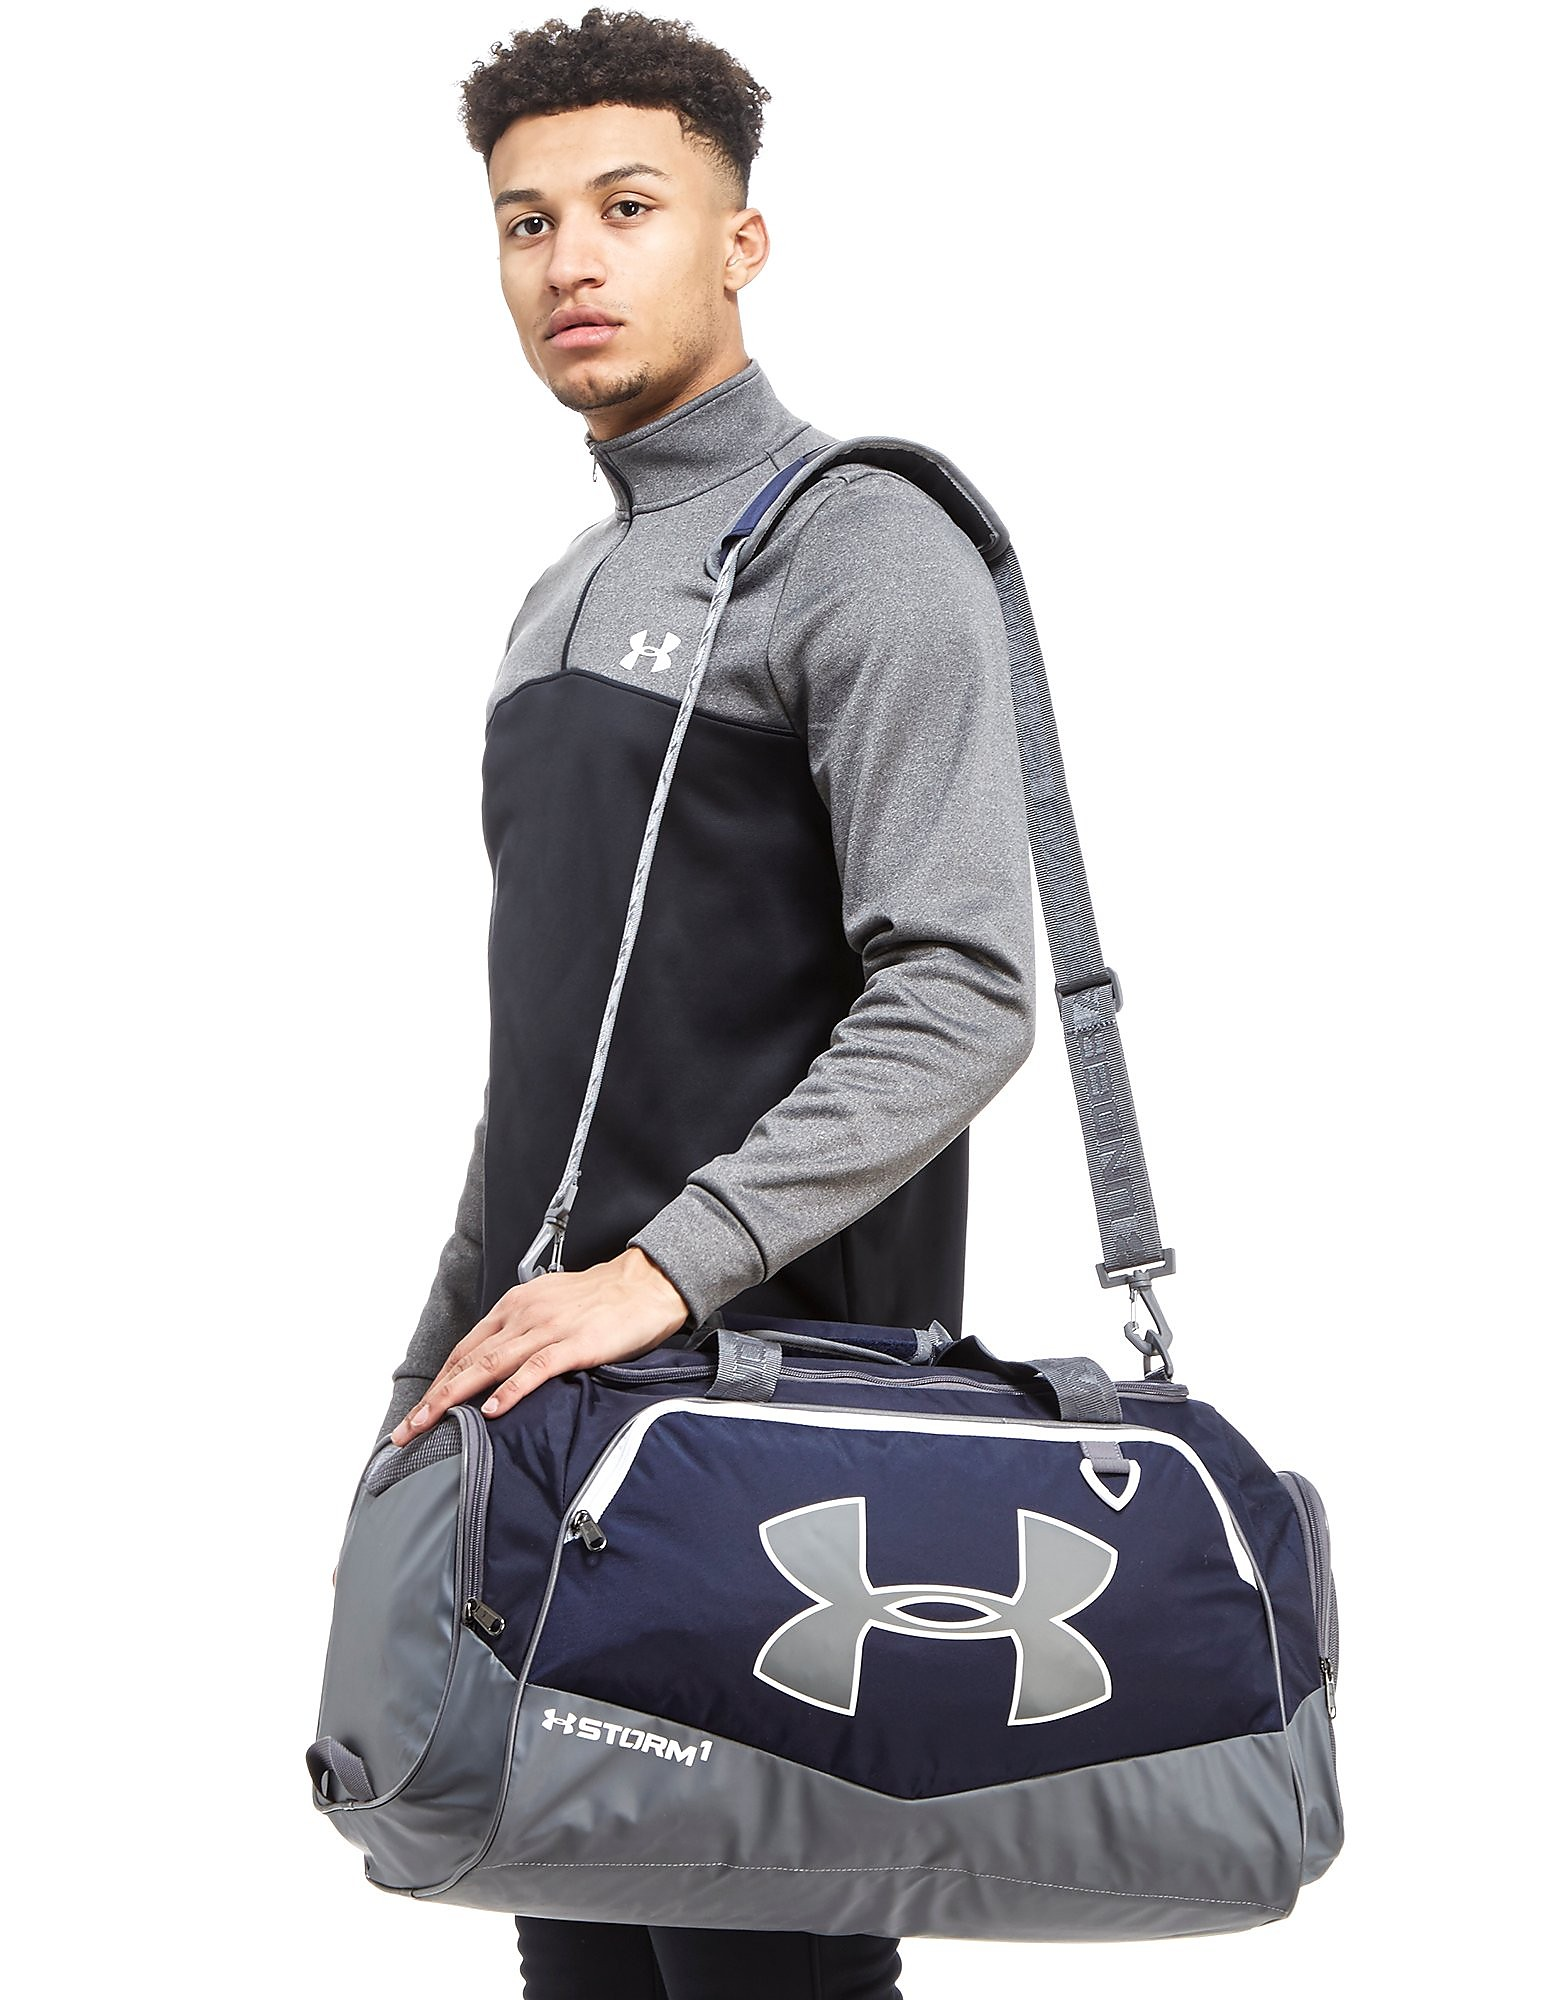 Under Armour Storm Undeniable Duffle Bag